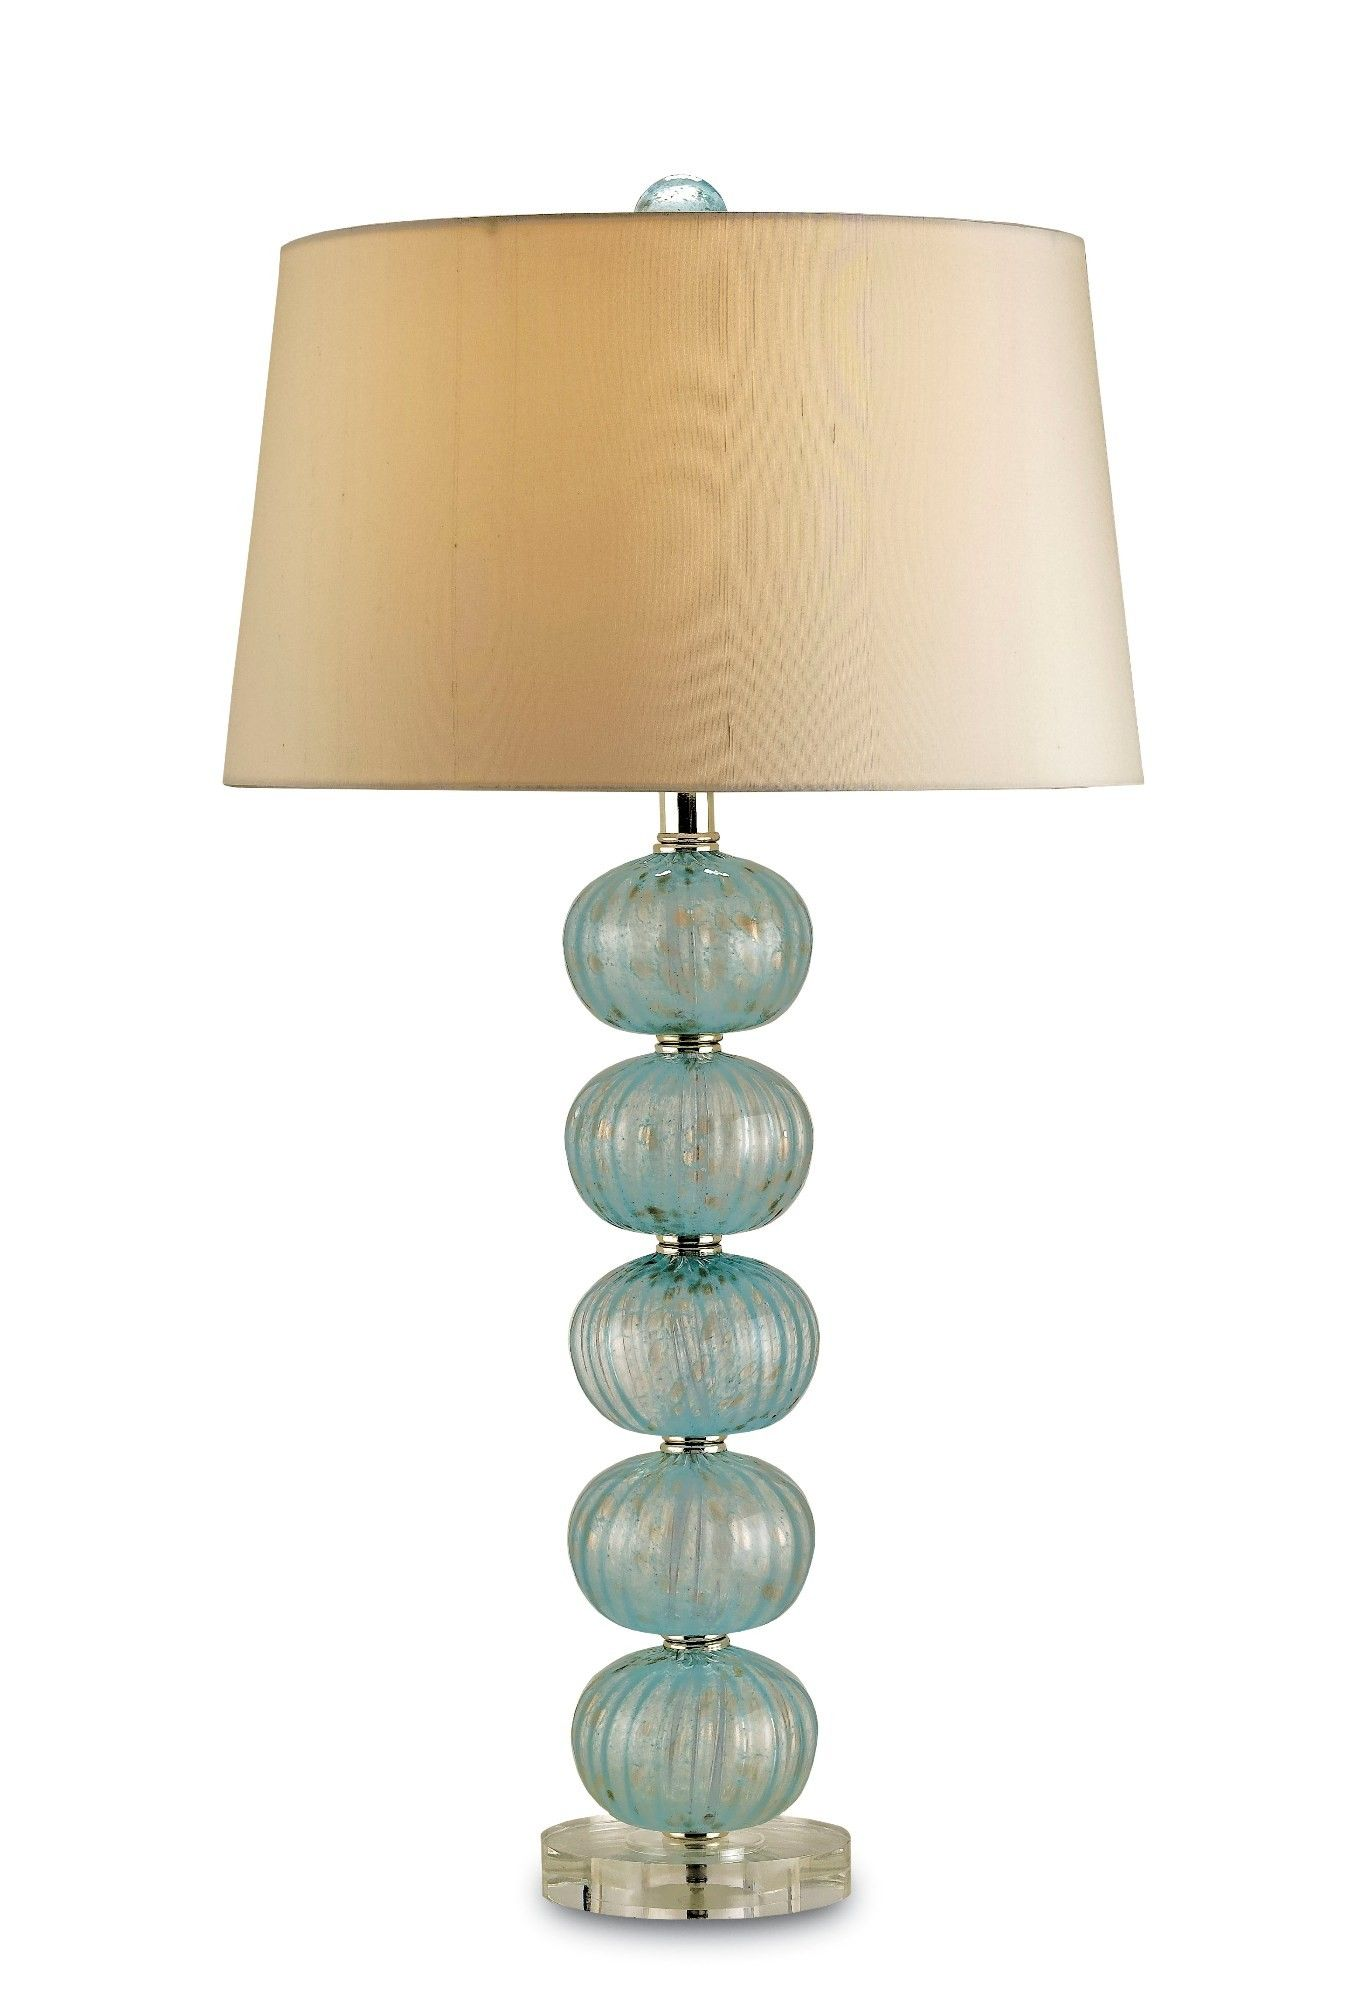 A table lamp that reminds of fishing glass floats shop carons a table lamp that reminds of fishing glass floats geotapseo Gallery